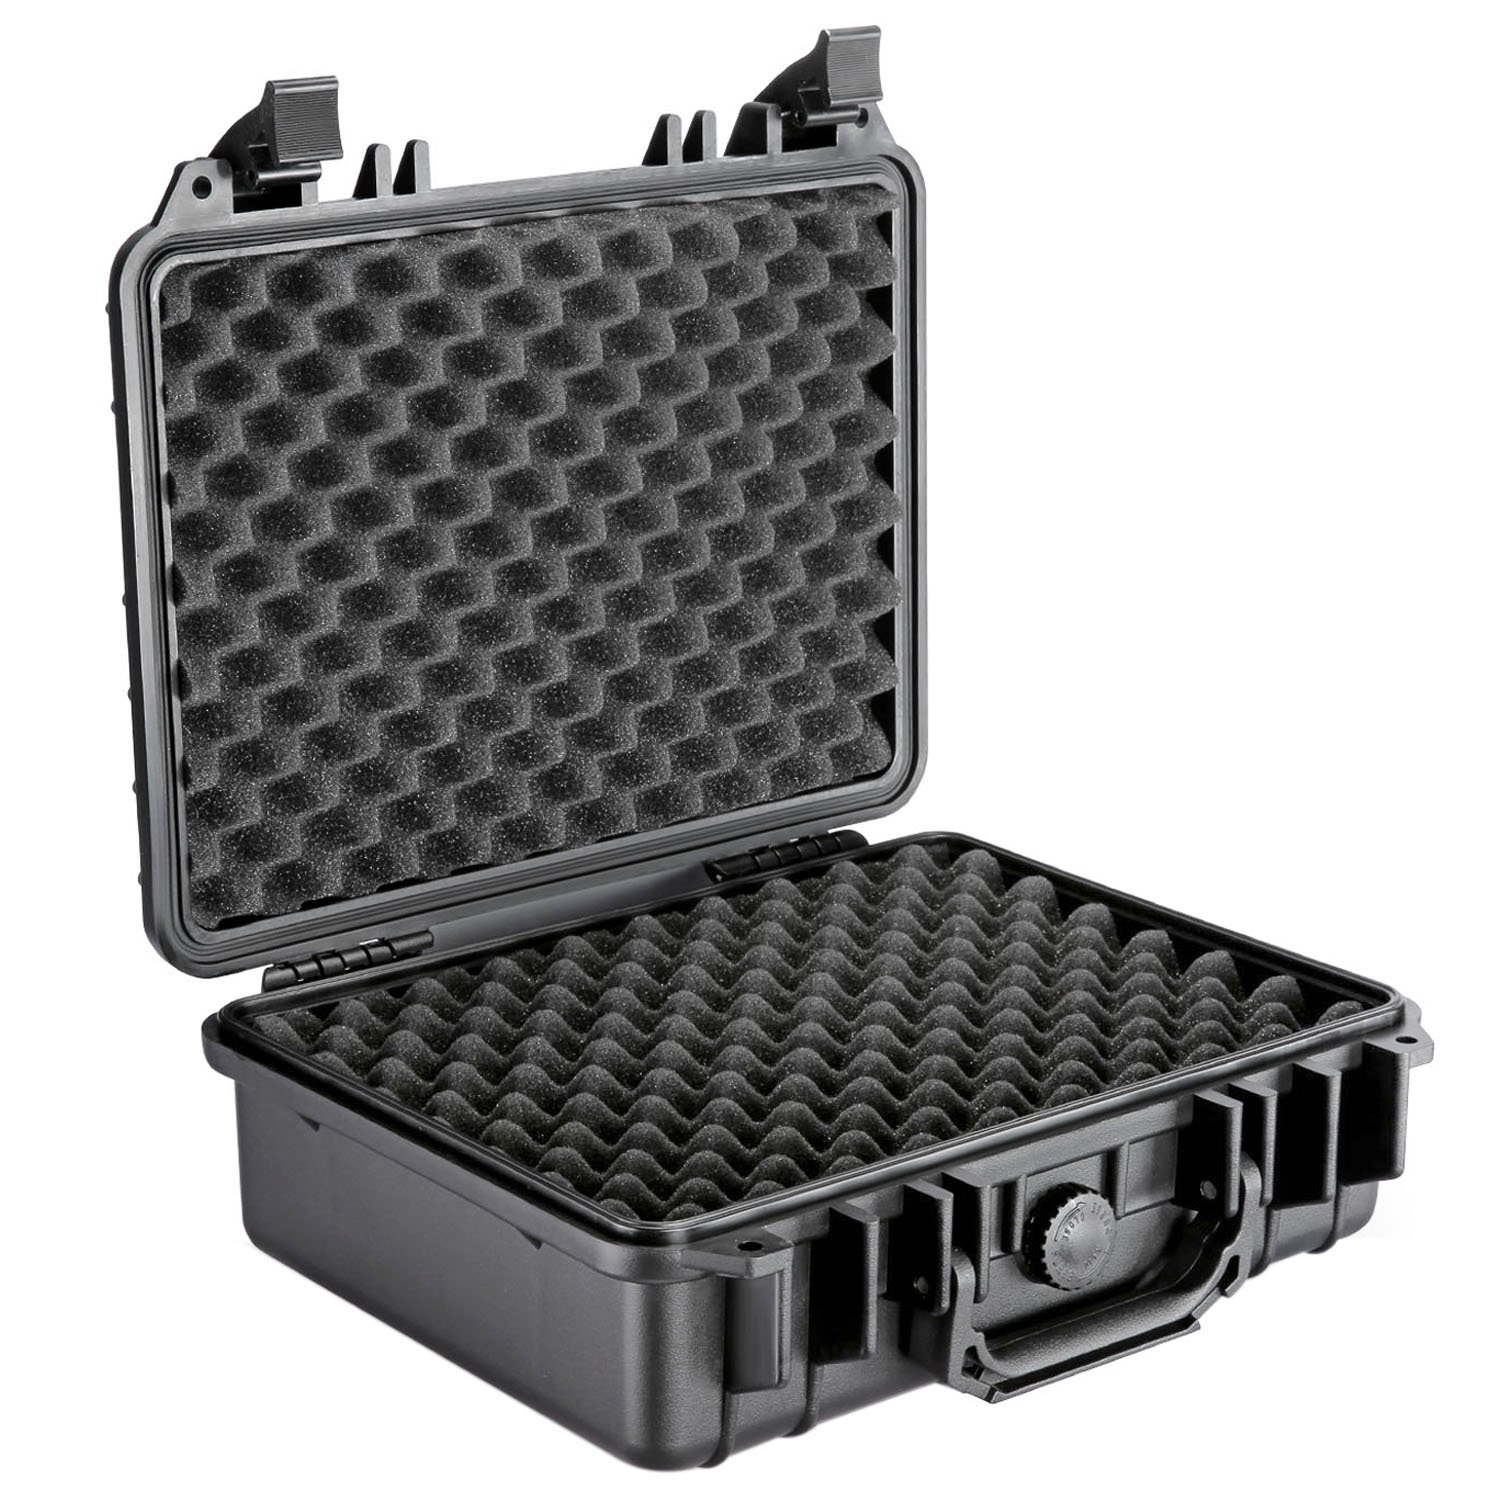 Neewer 13x10x6/33x25x15cm Waterproof Carrying Case with Cubed Foam for Cameras, Flashes, LED Lights, Lenses and Other Accessories (Black) by Neewer